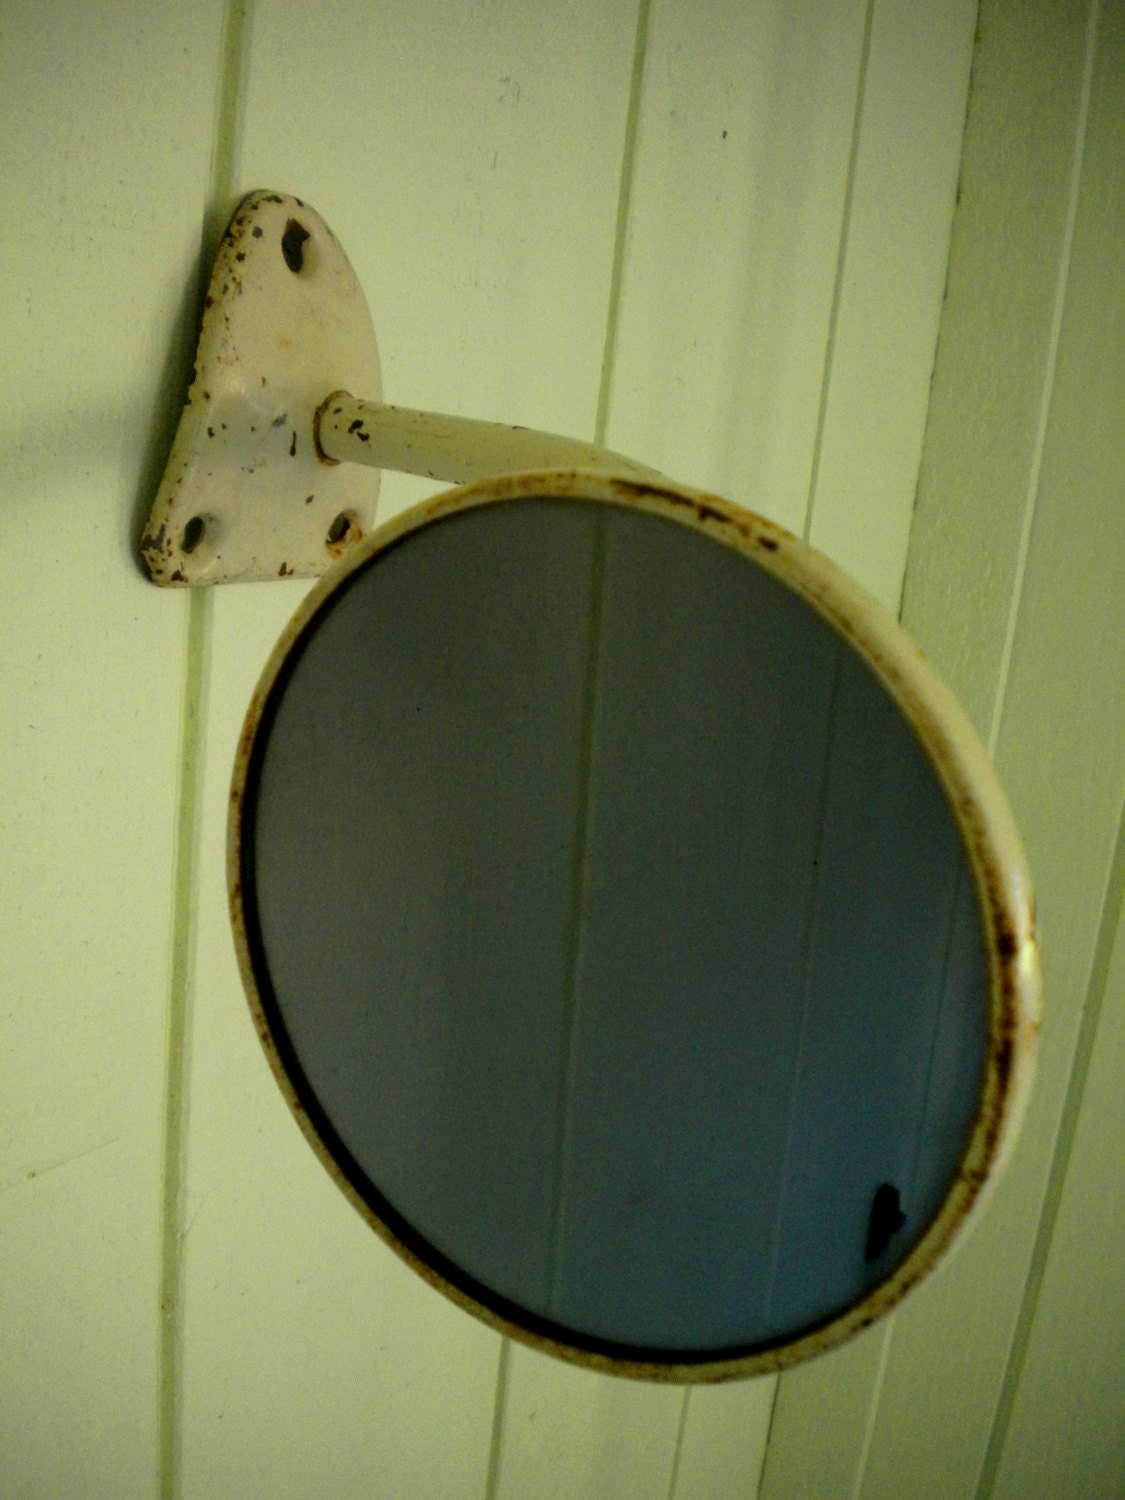 Vintage Truck Side Mirror Repurposed As Wall Mirror Or Display